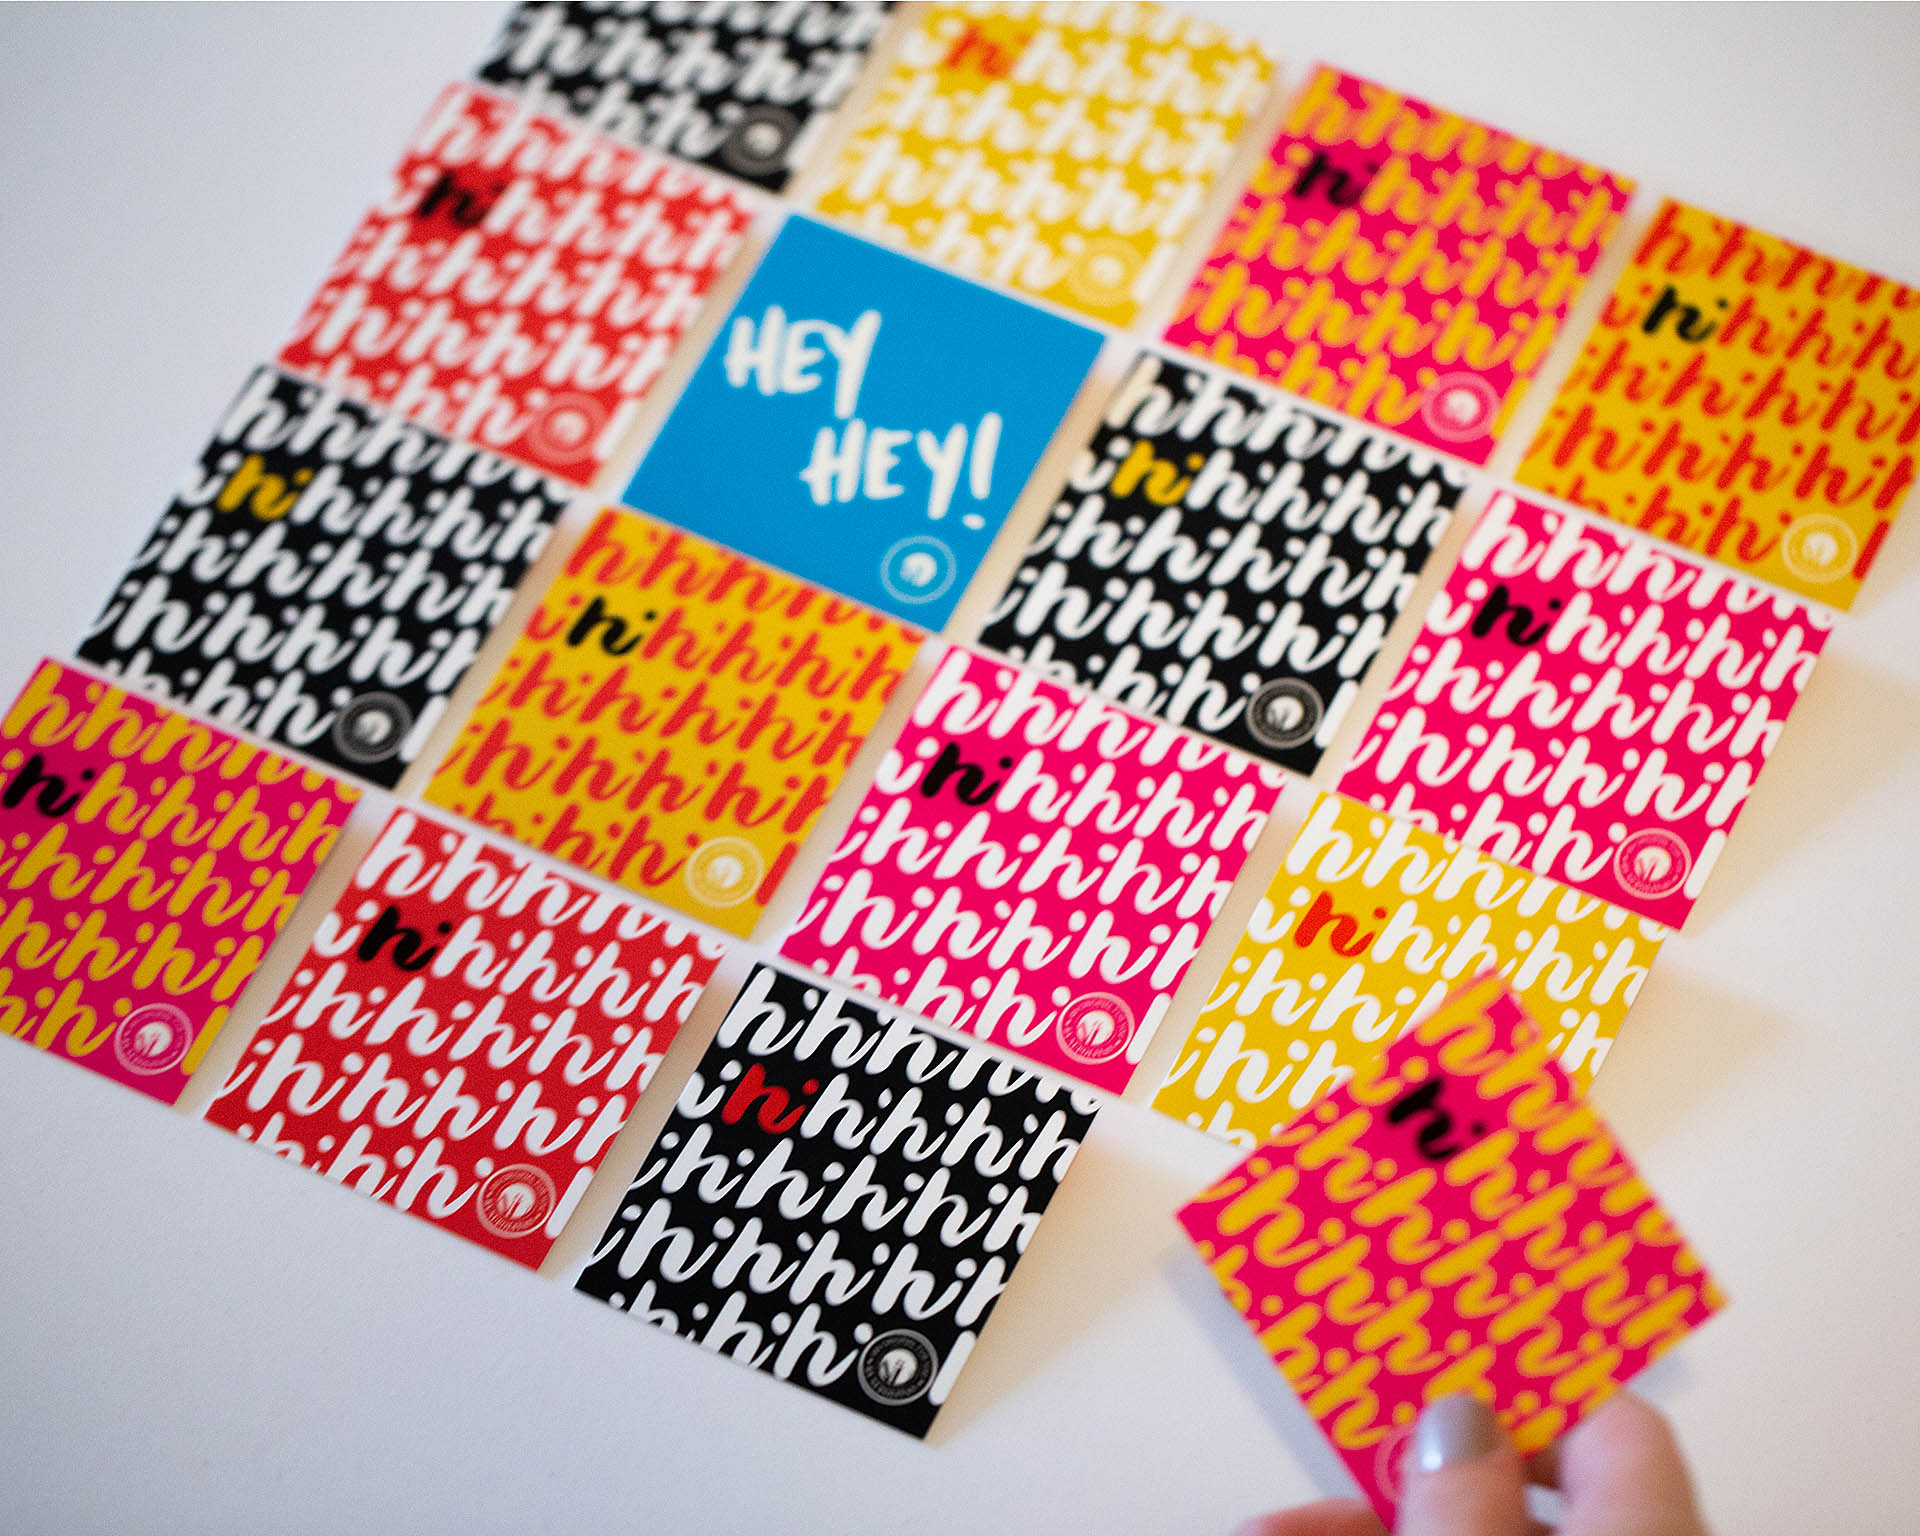 A hand grabbing the corner card out of a grid of colorful square cards